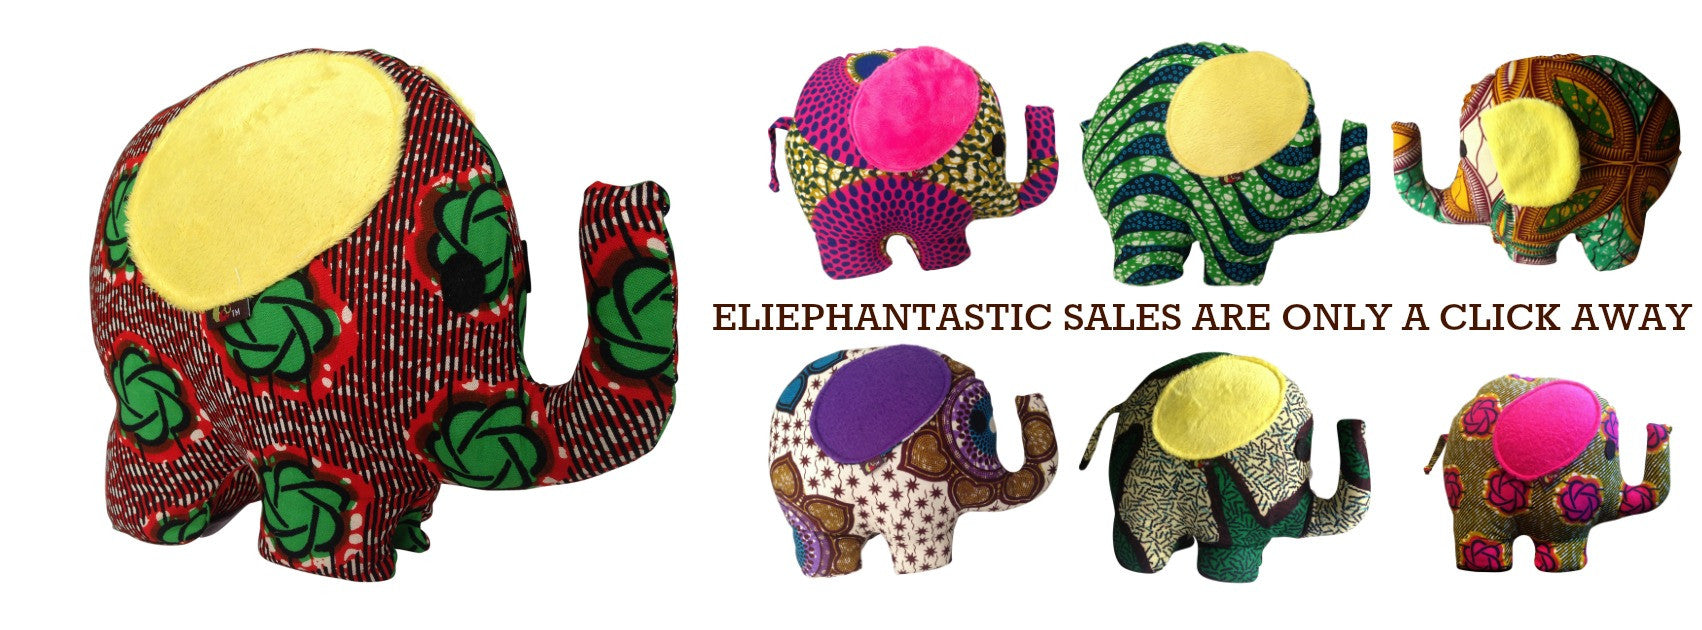 AFRICAN PRINT STUFFED TOYS